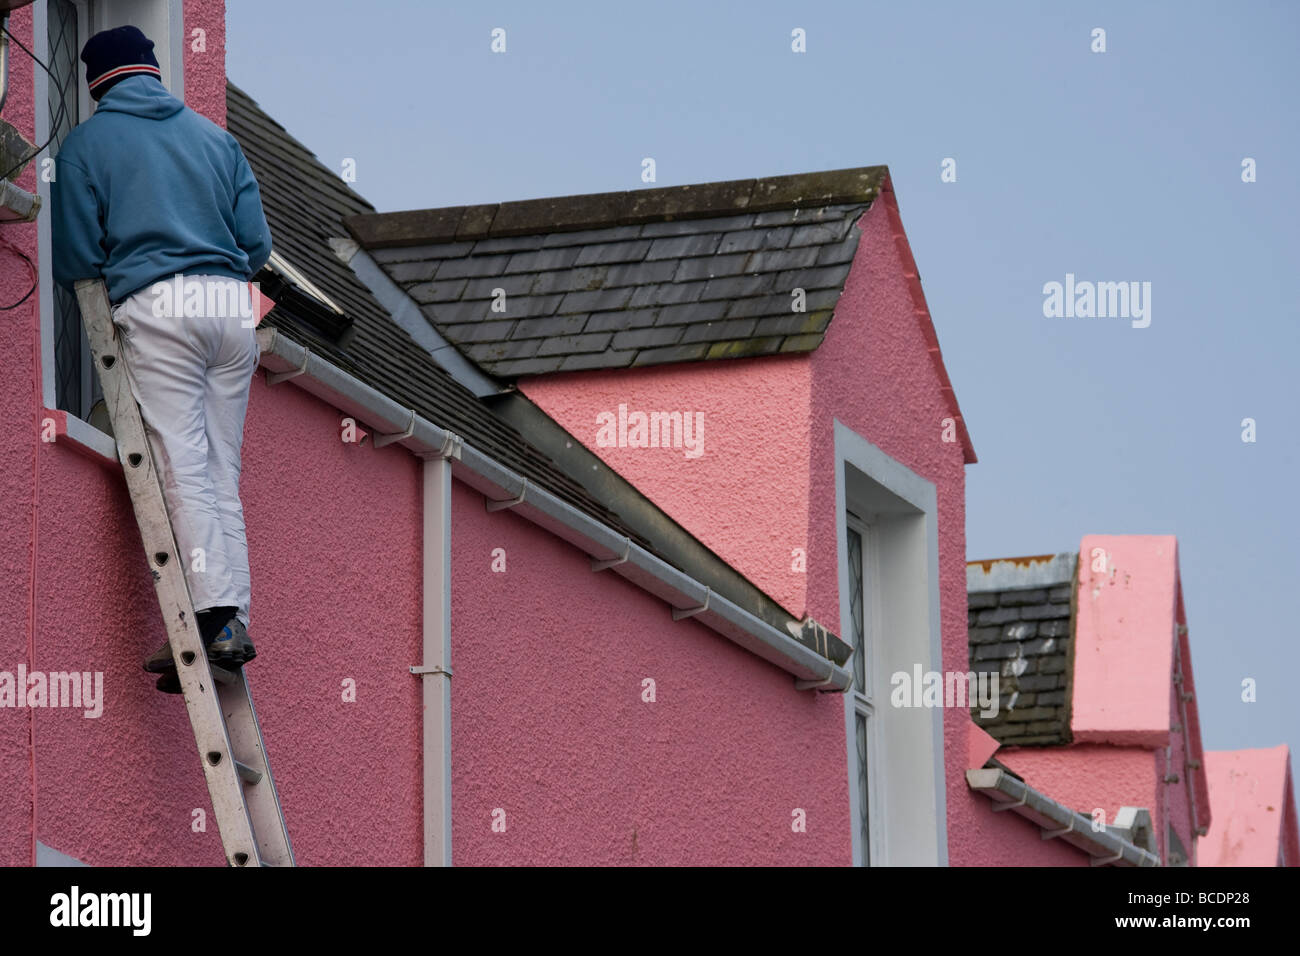 Terraced House Painted In Colours Stock Photos & Terraced House ...